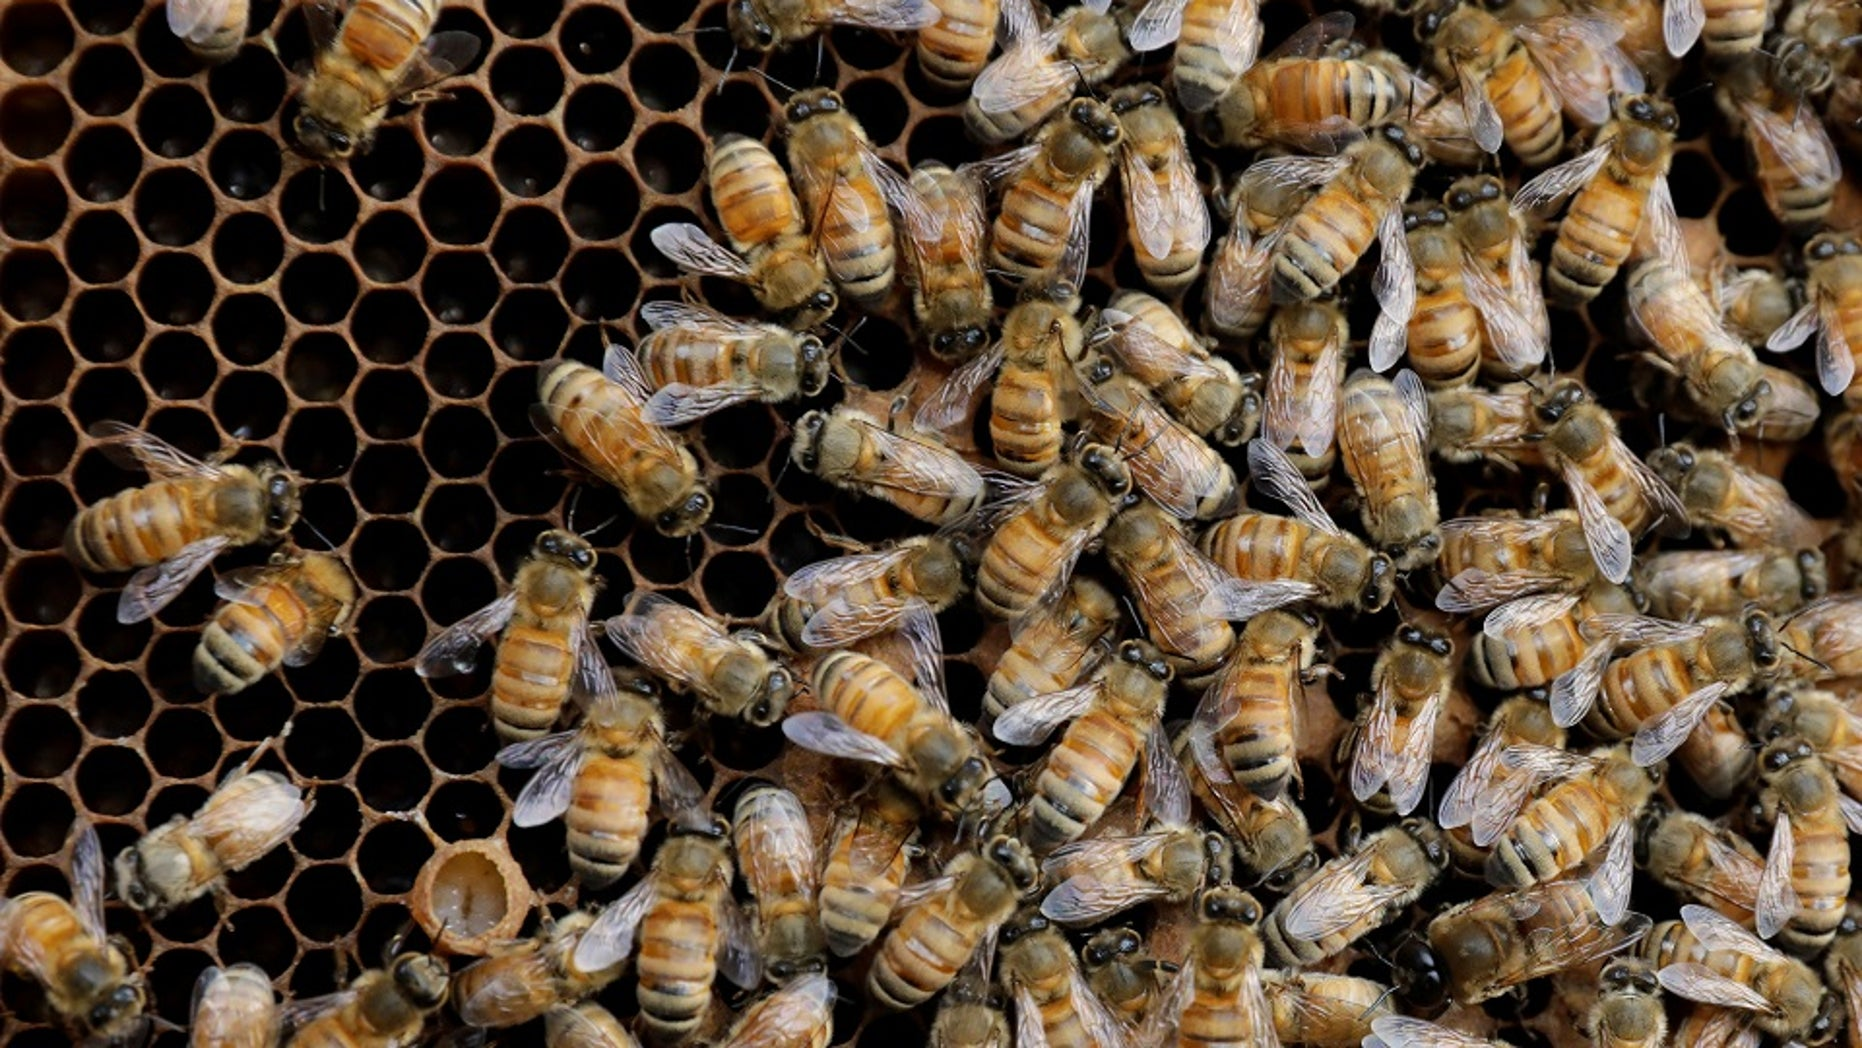 A million aggressive bees were found in a home that is threatening an El Paso neighborhood.